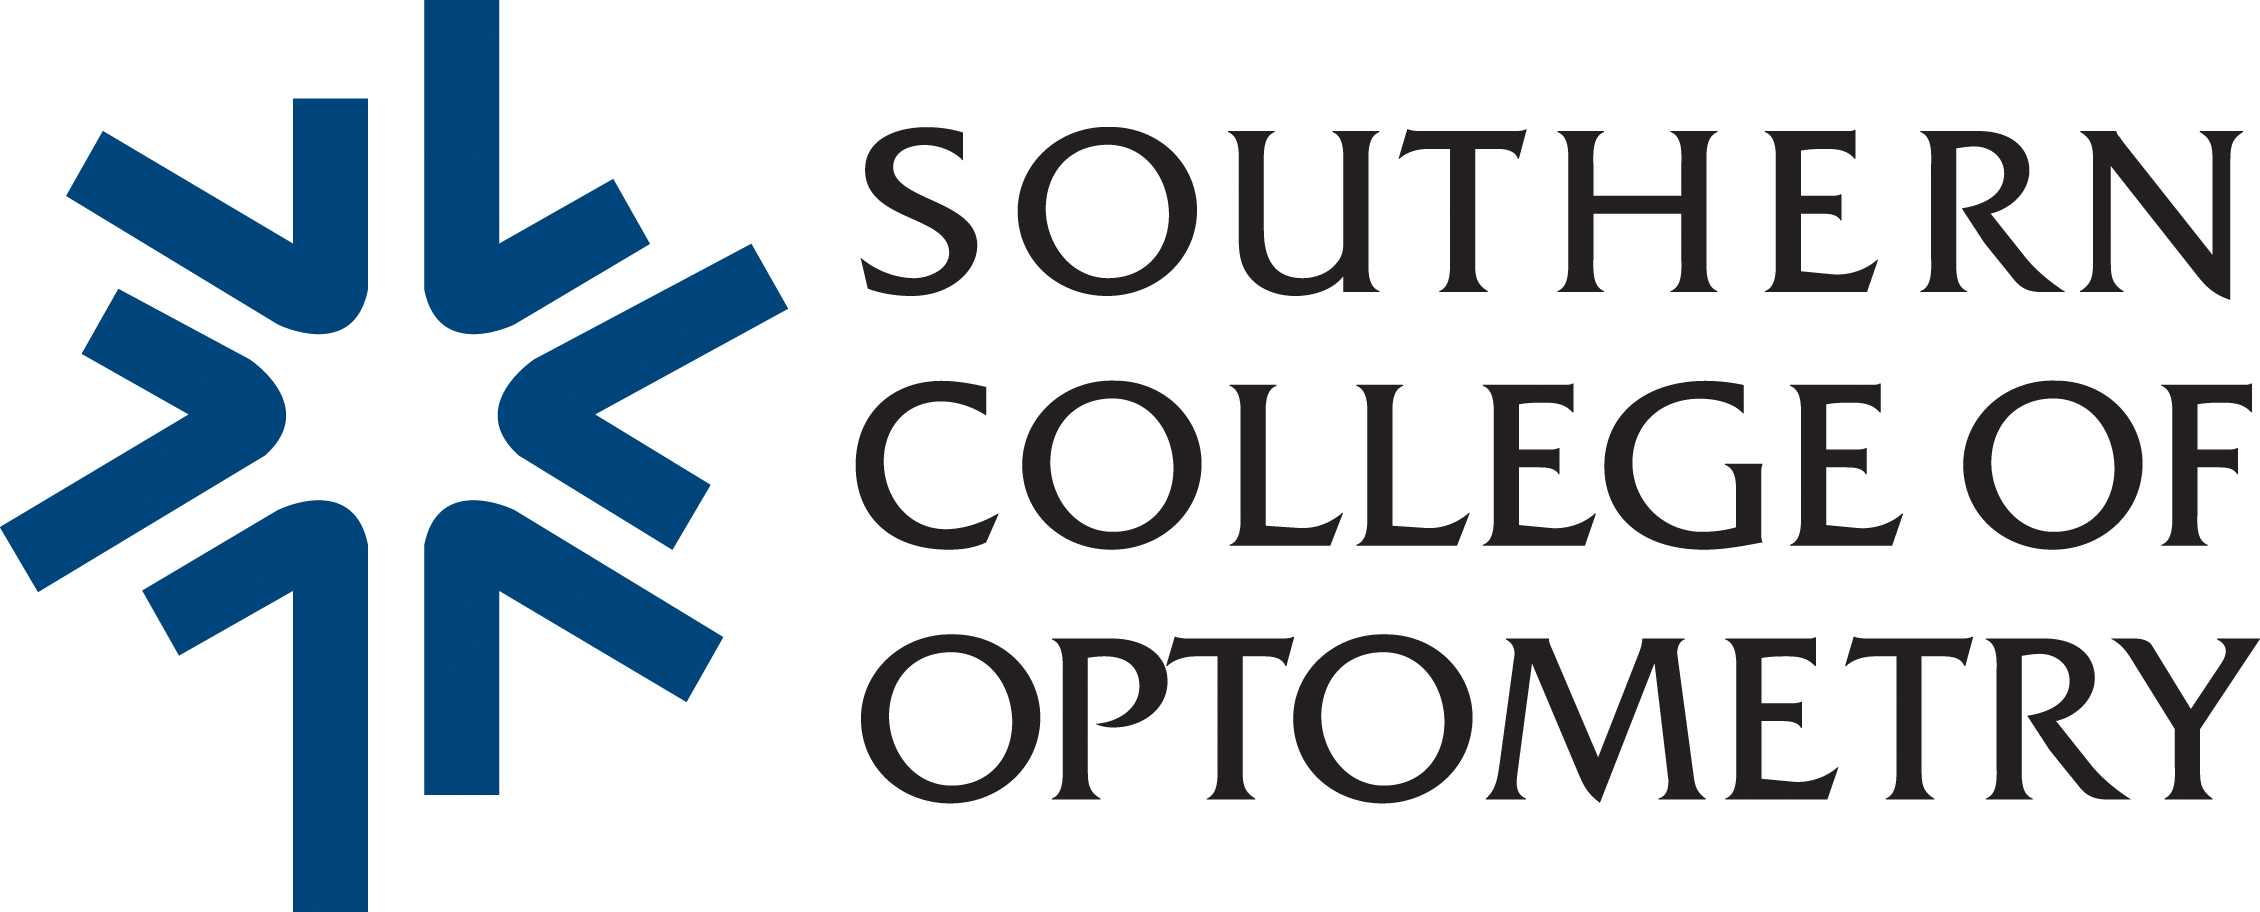 Southern College of Optometry Company Logo